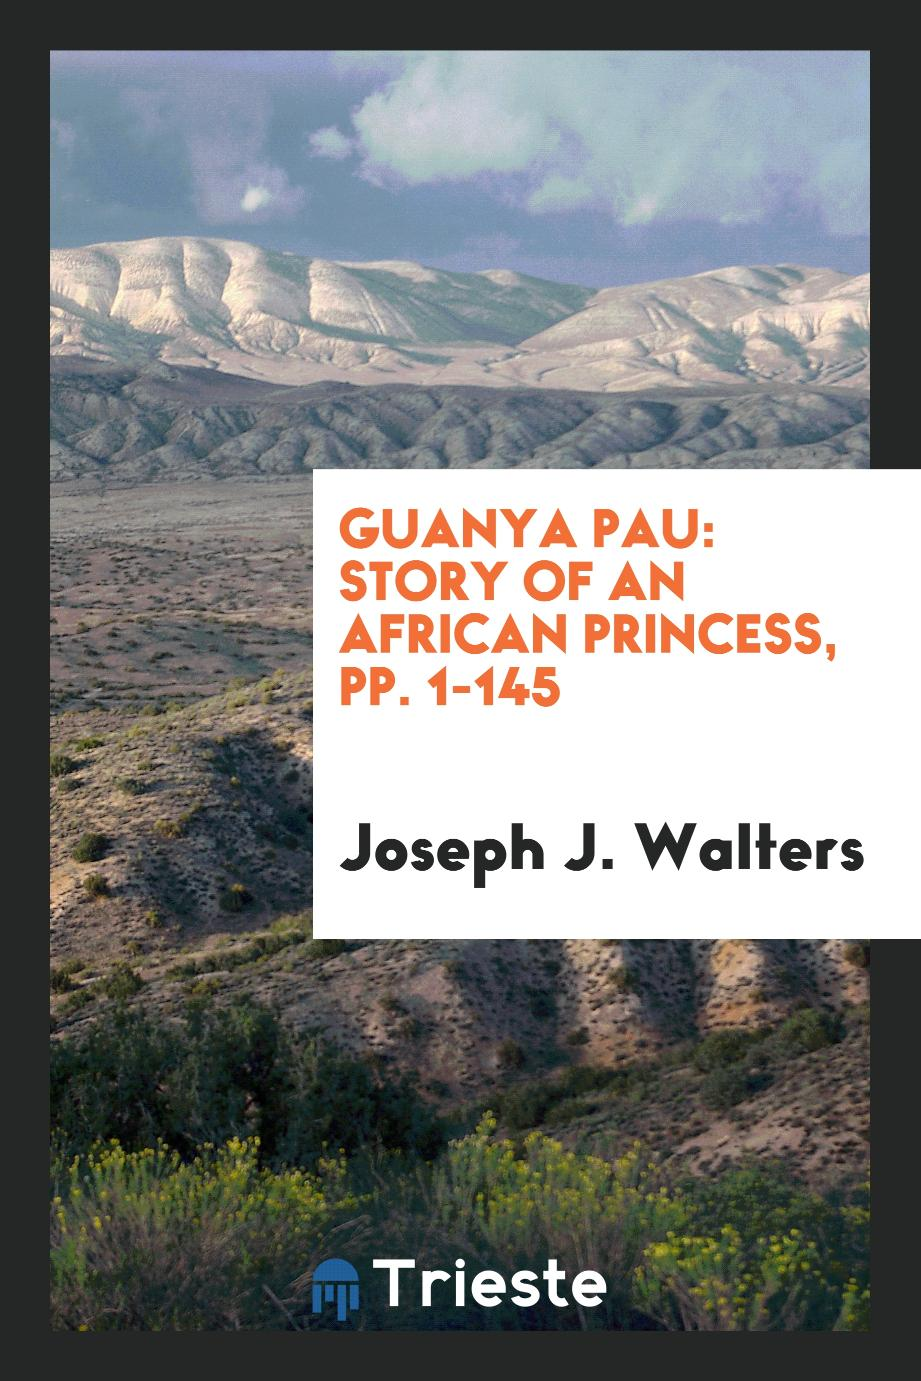 Guanya Pau: Story of an African Princess, pp. 1-145